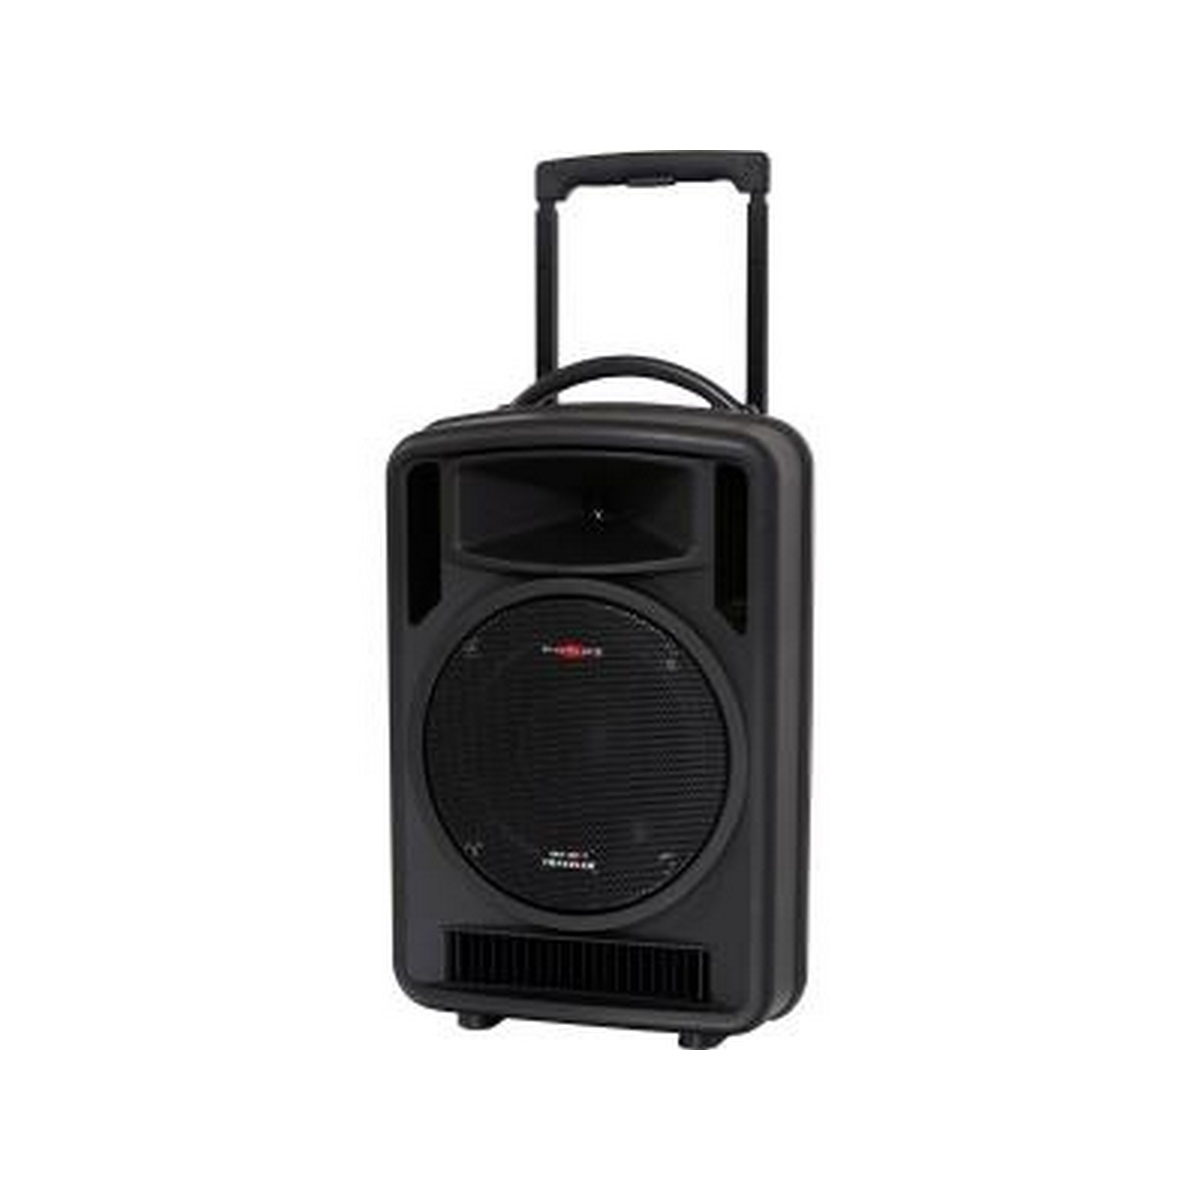 Galaxy Audio TRAVELER 10 W/AUDIO LINK, 1 REC, MIC